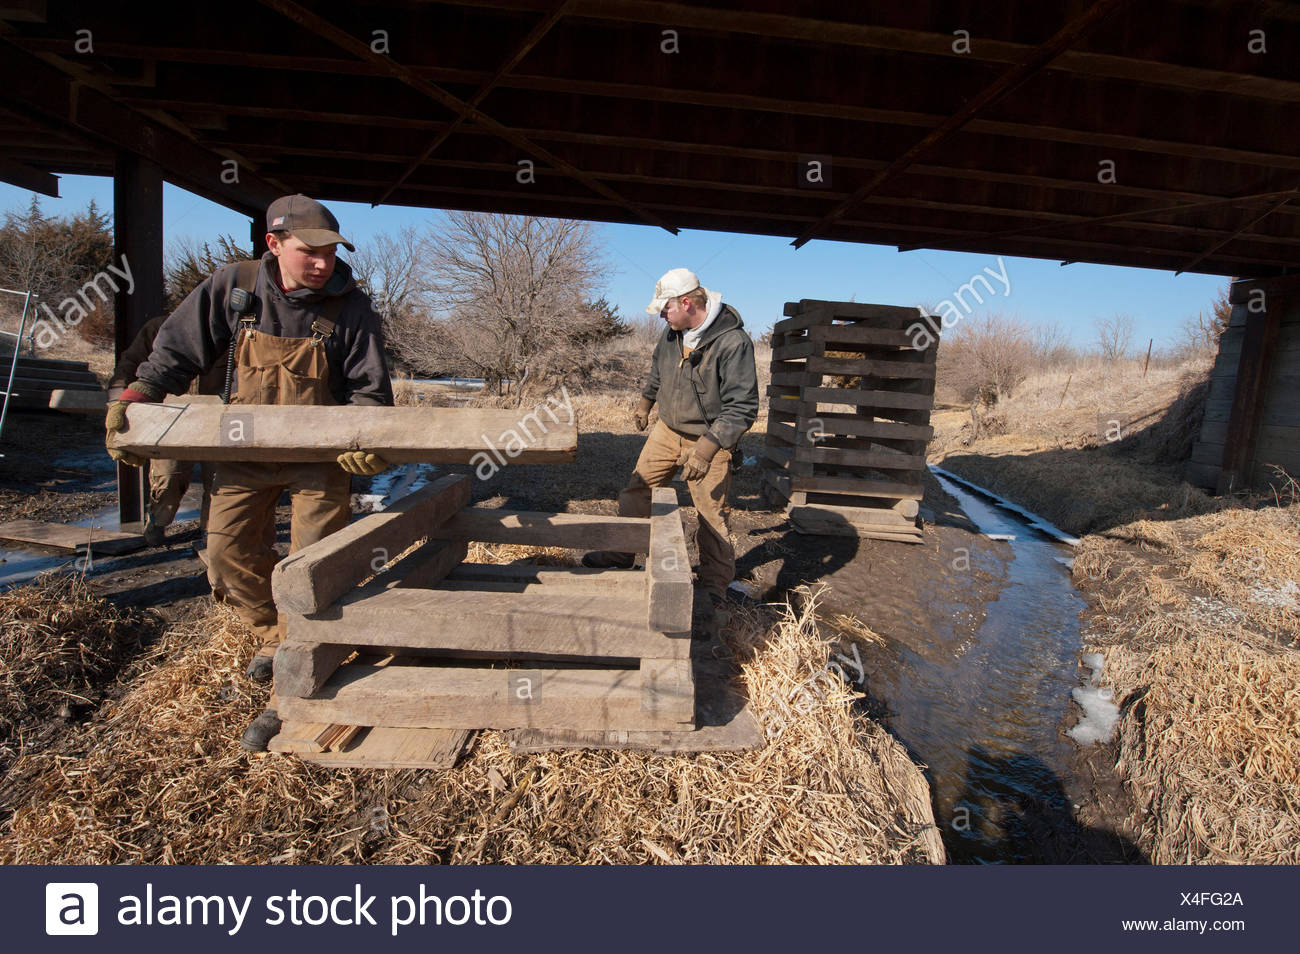 A crew works to prop a bridge up so that it can handle more weight. - Stock Image